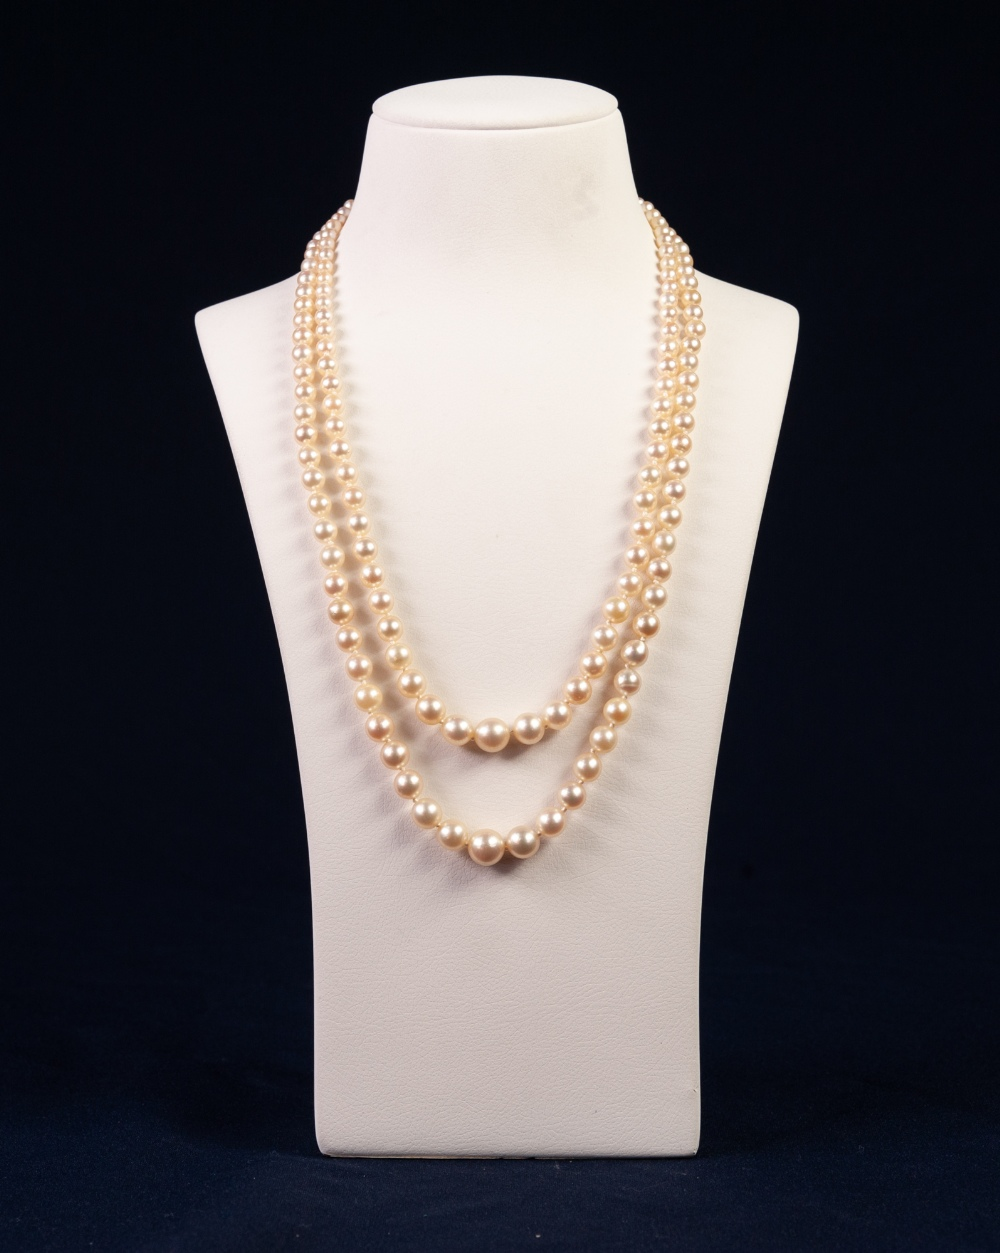 Lot 90 - TWO STRAND NECKLACE OF GRADUATED CULTURED PEARLS, 77 & 81 pearls; 3.6mm pearls up to 9mm pearls;